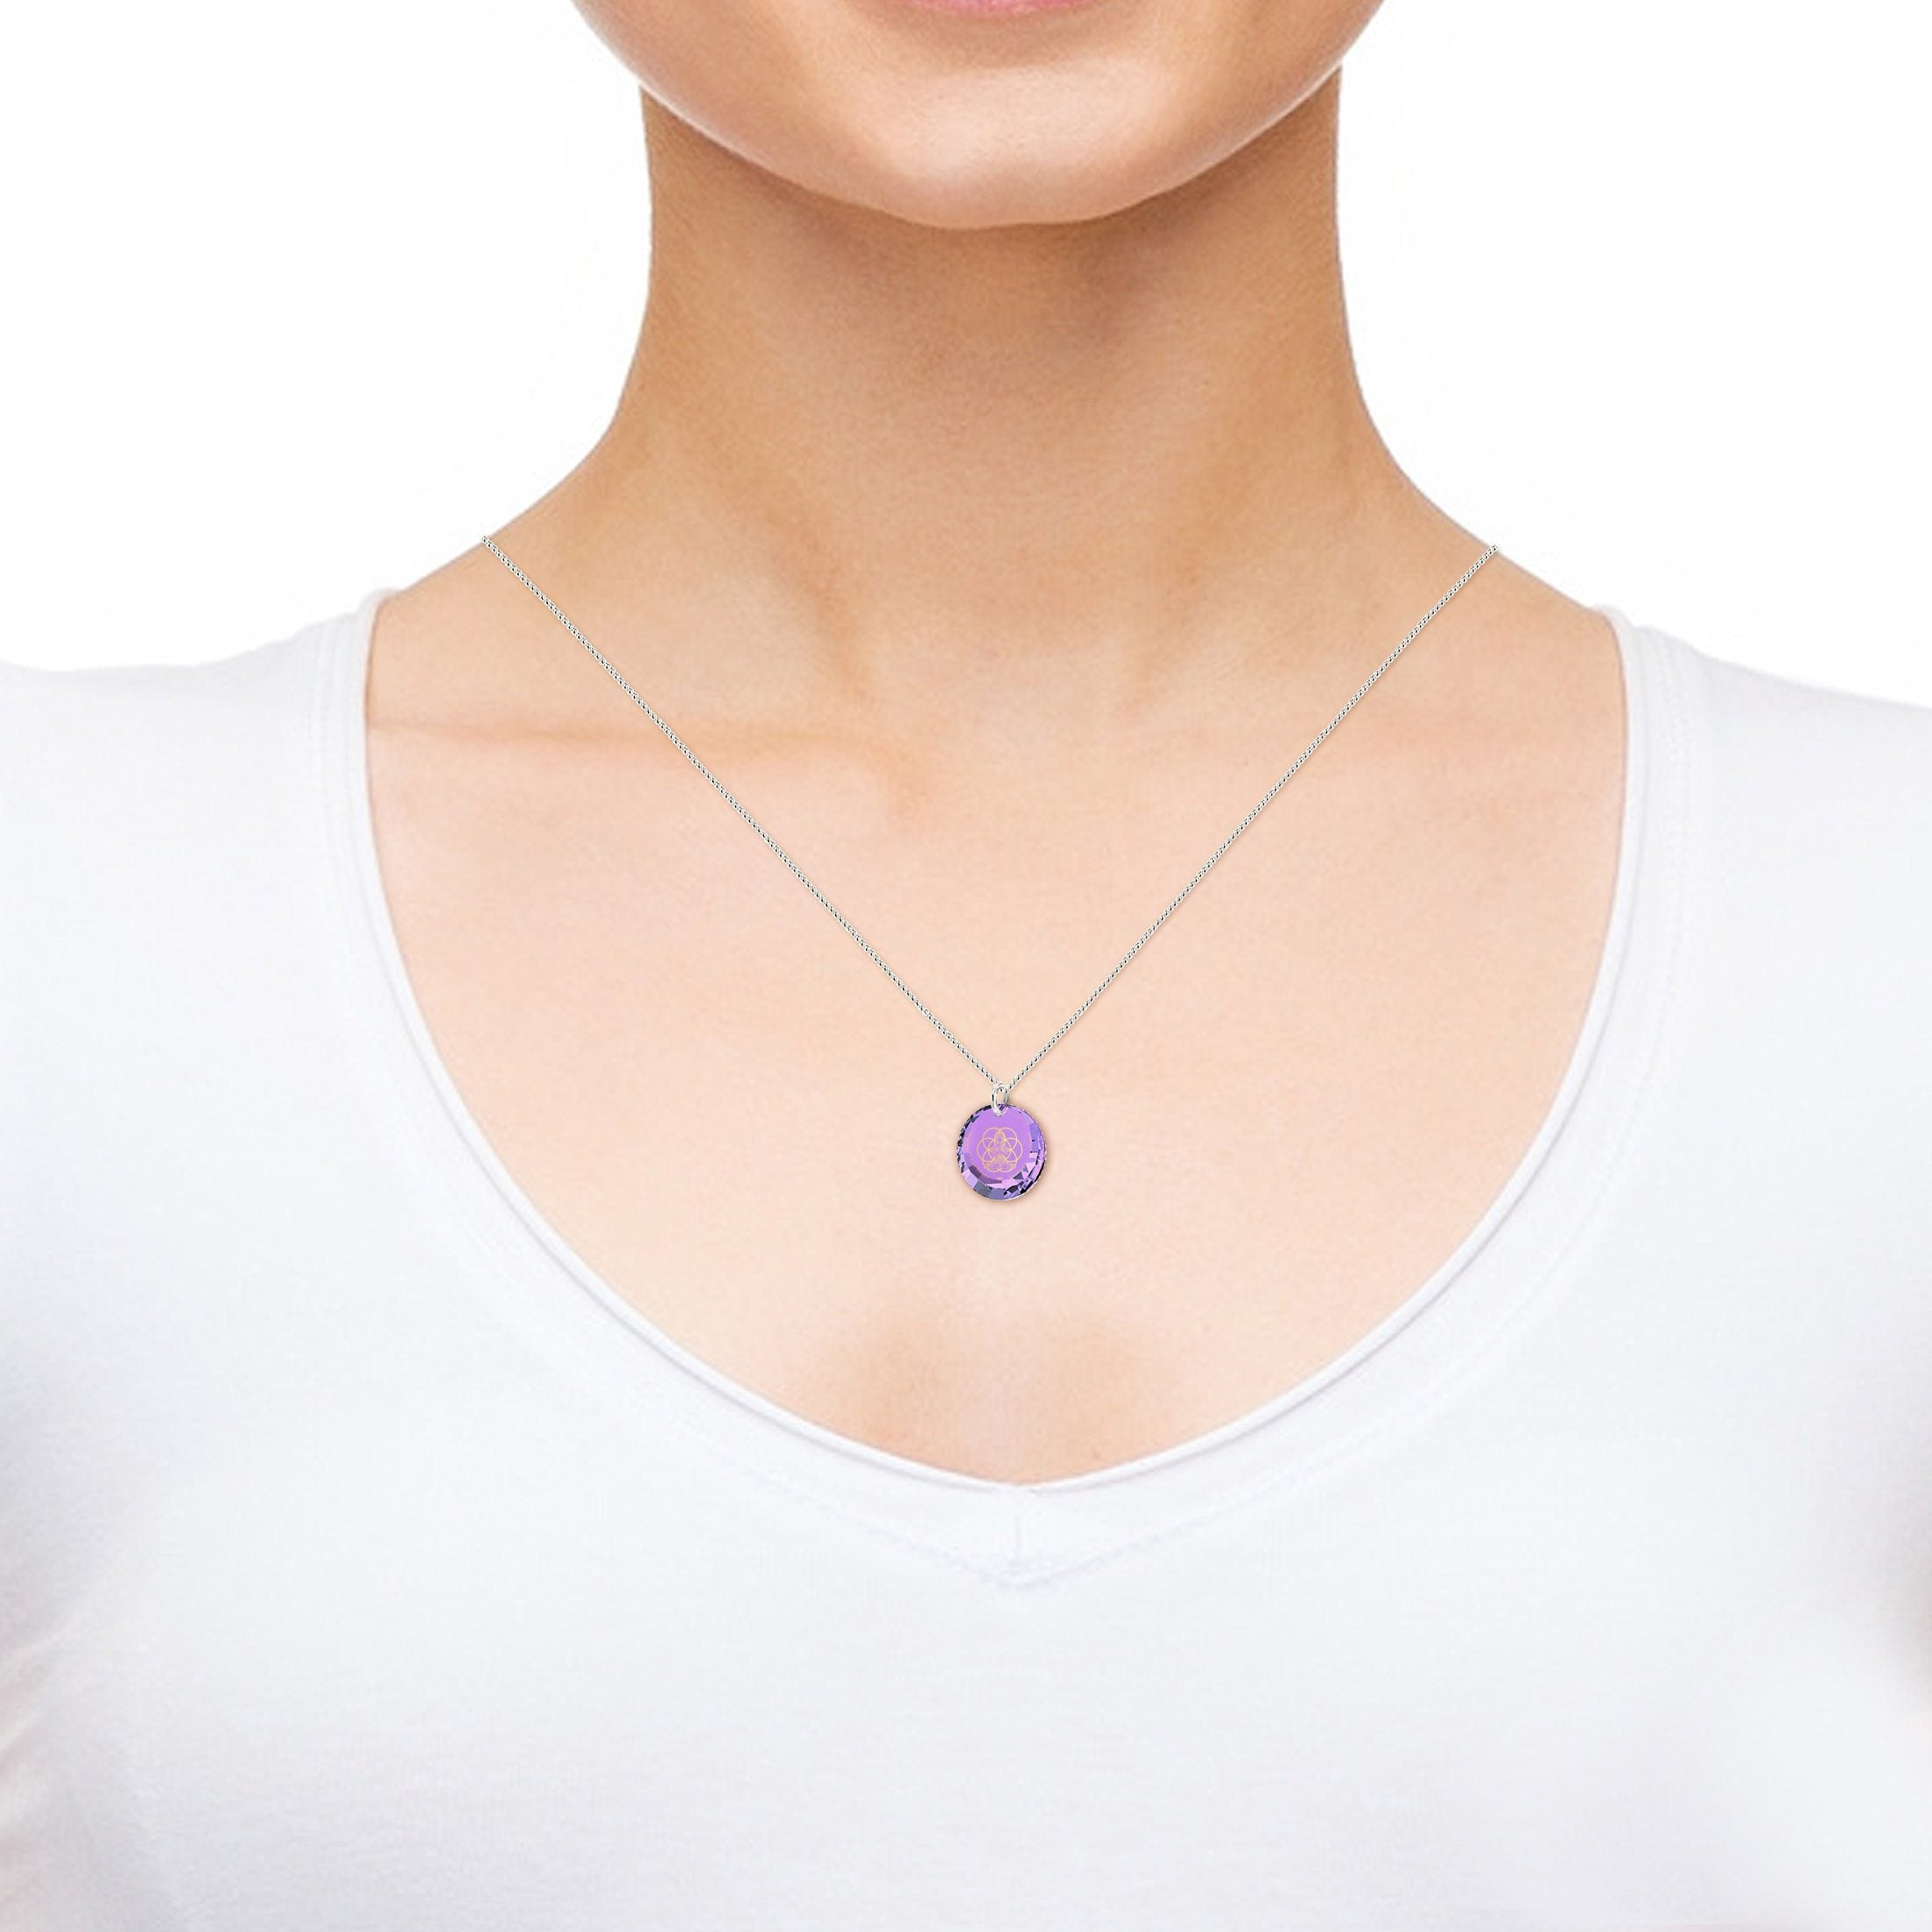 Meditation Jewelry Gifts Nano Jewelry